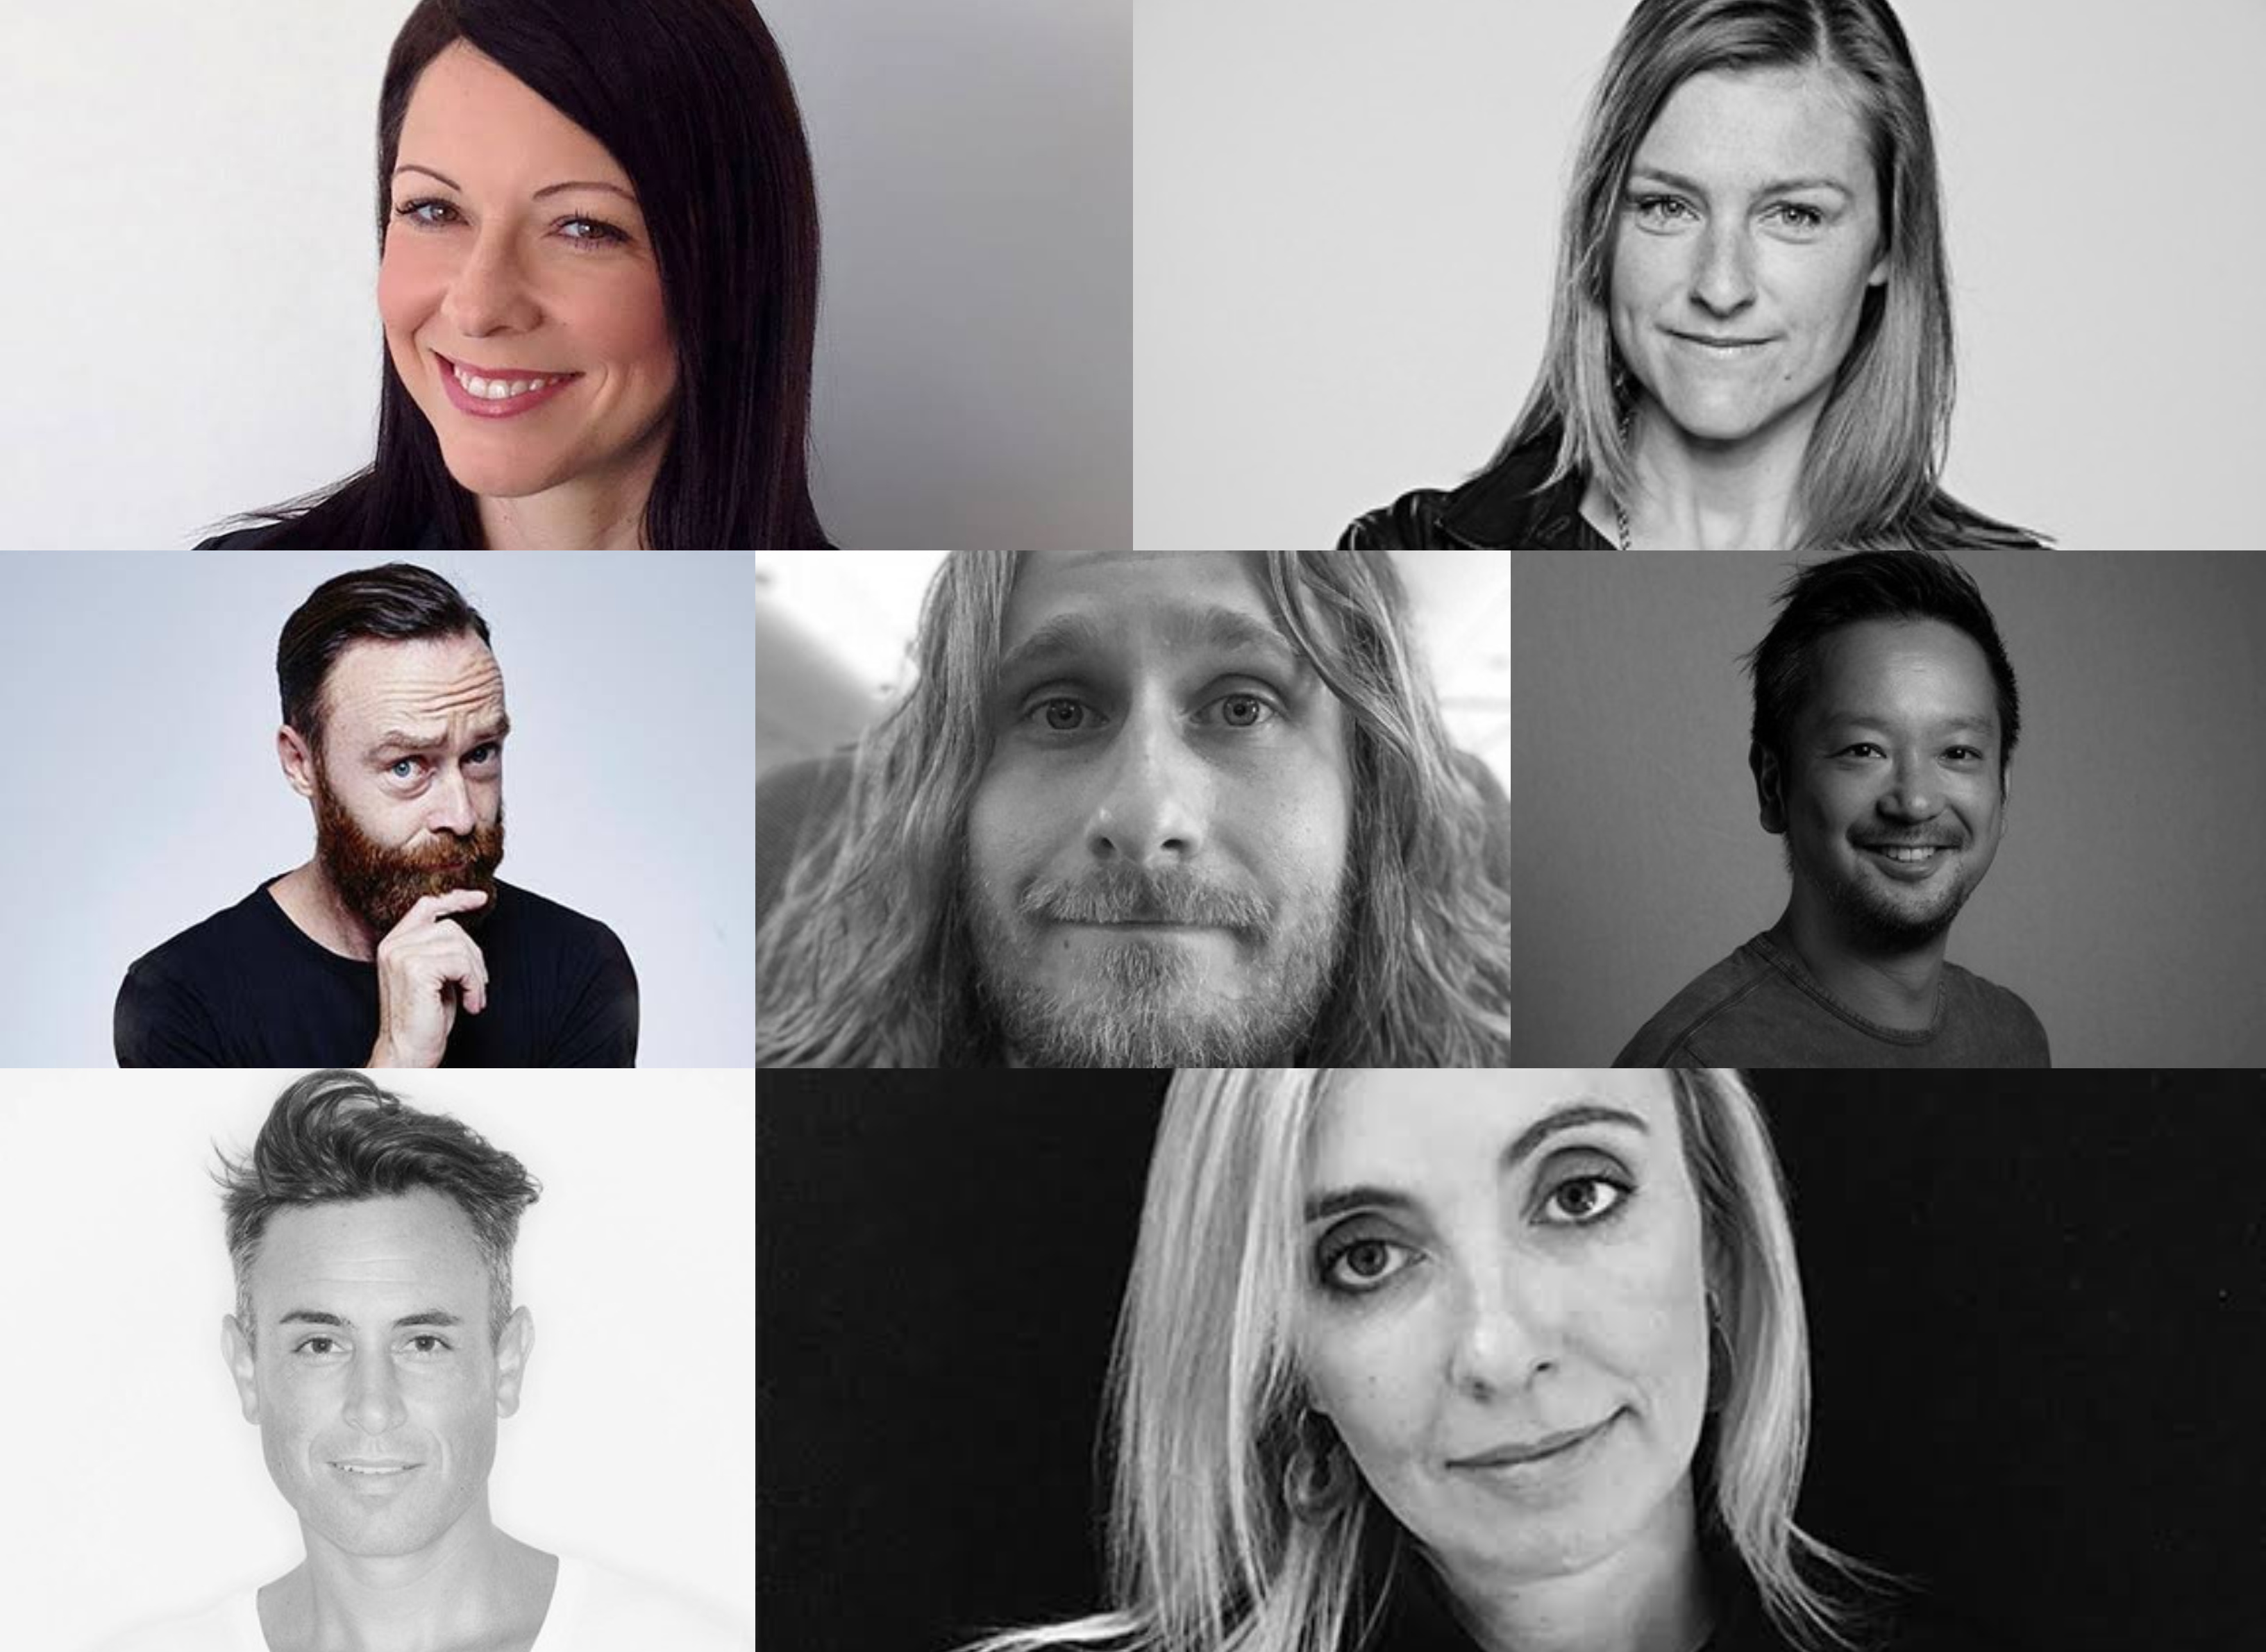 The One Club names seven top creatives from Australia selected to judge The One Show 2020